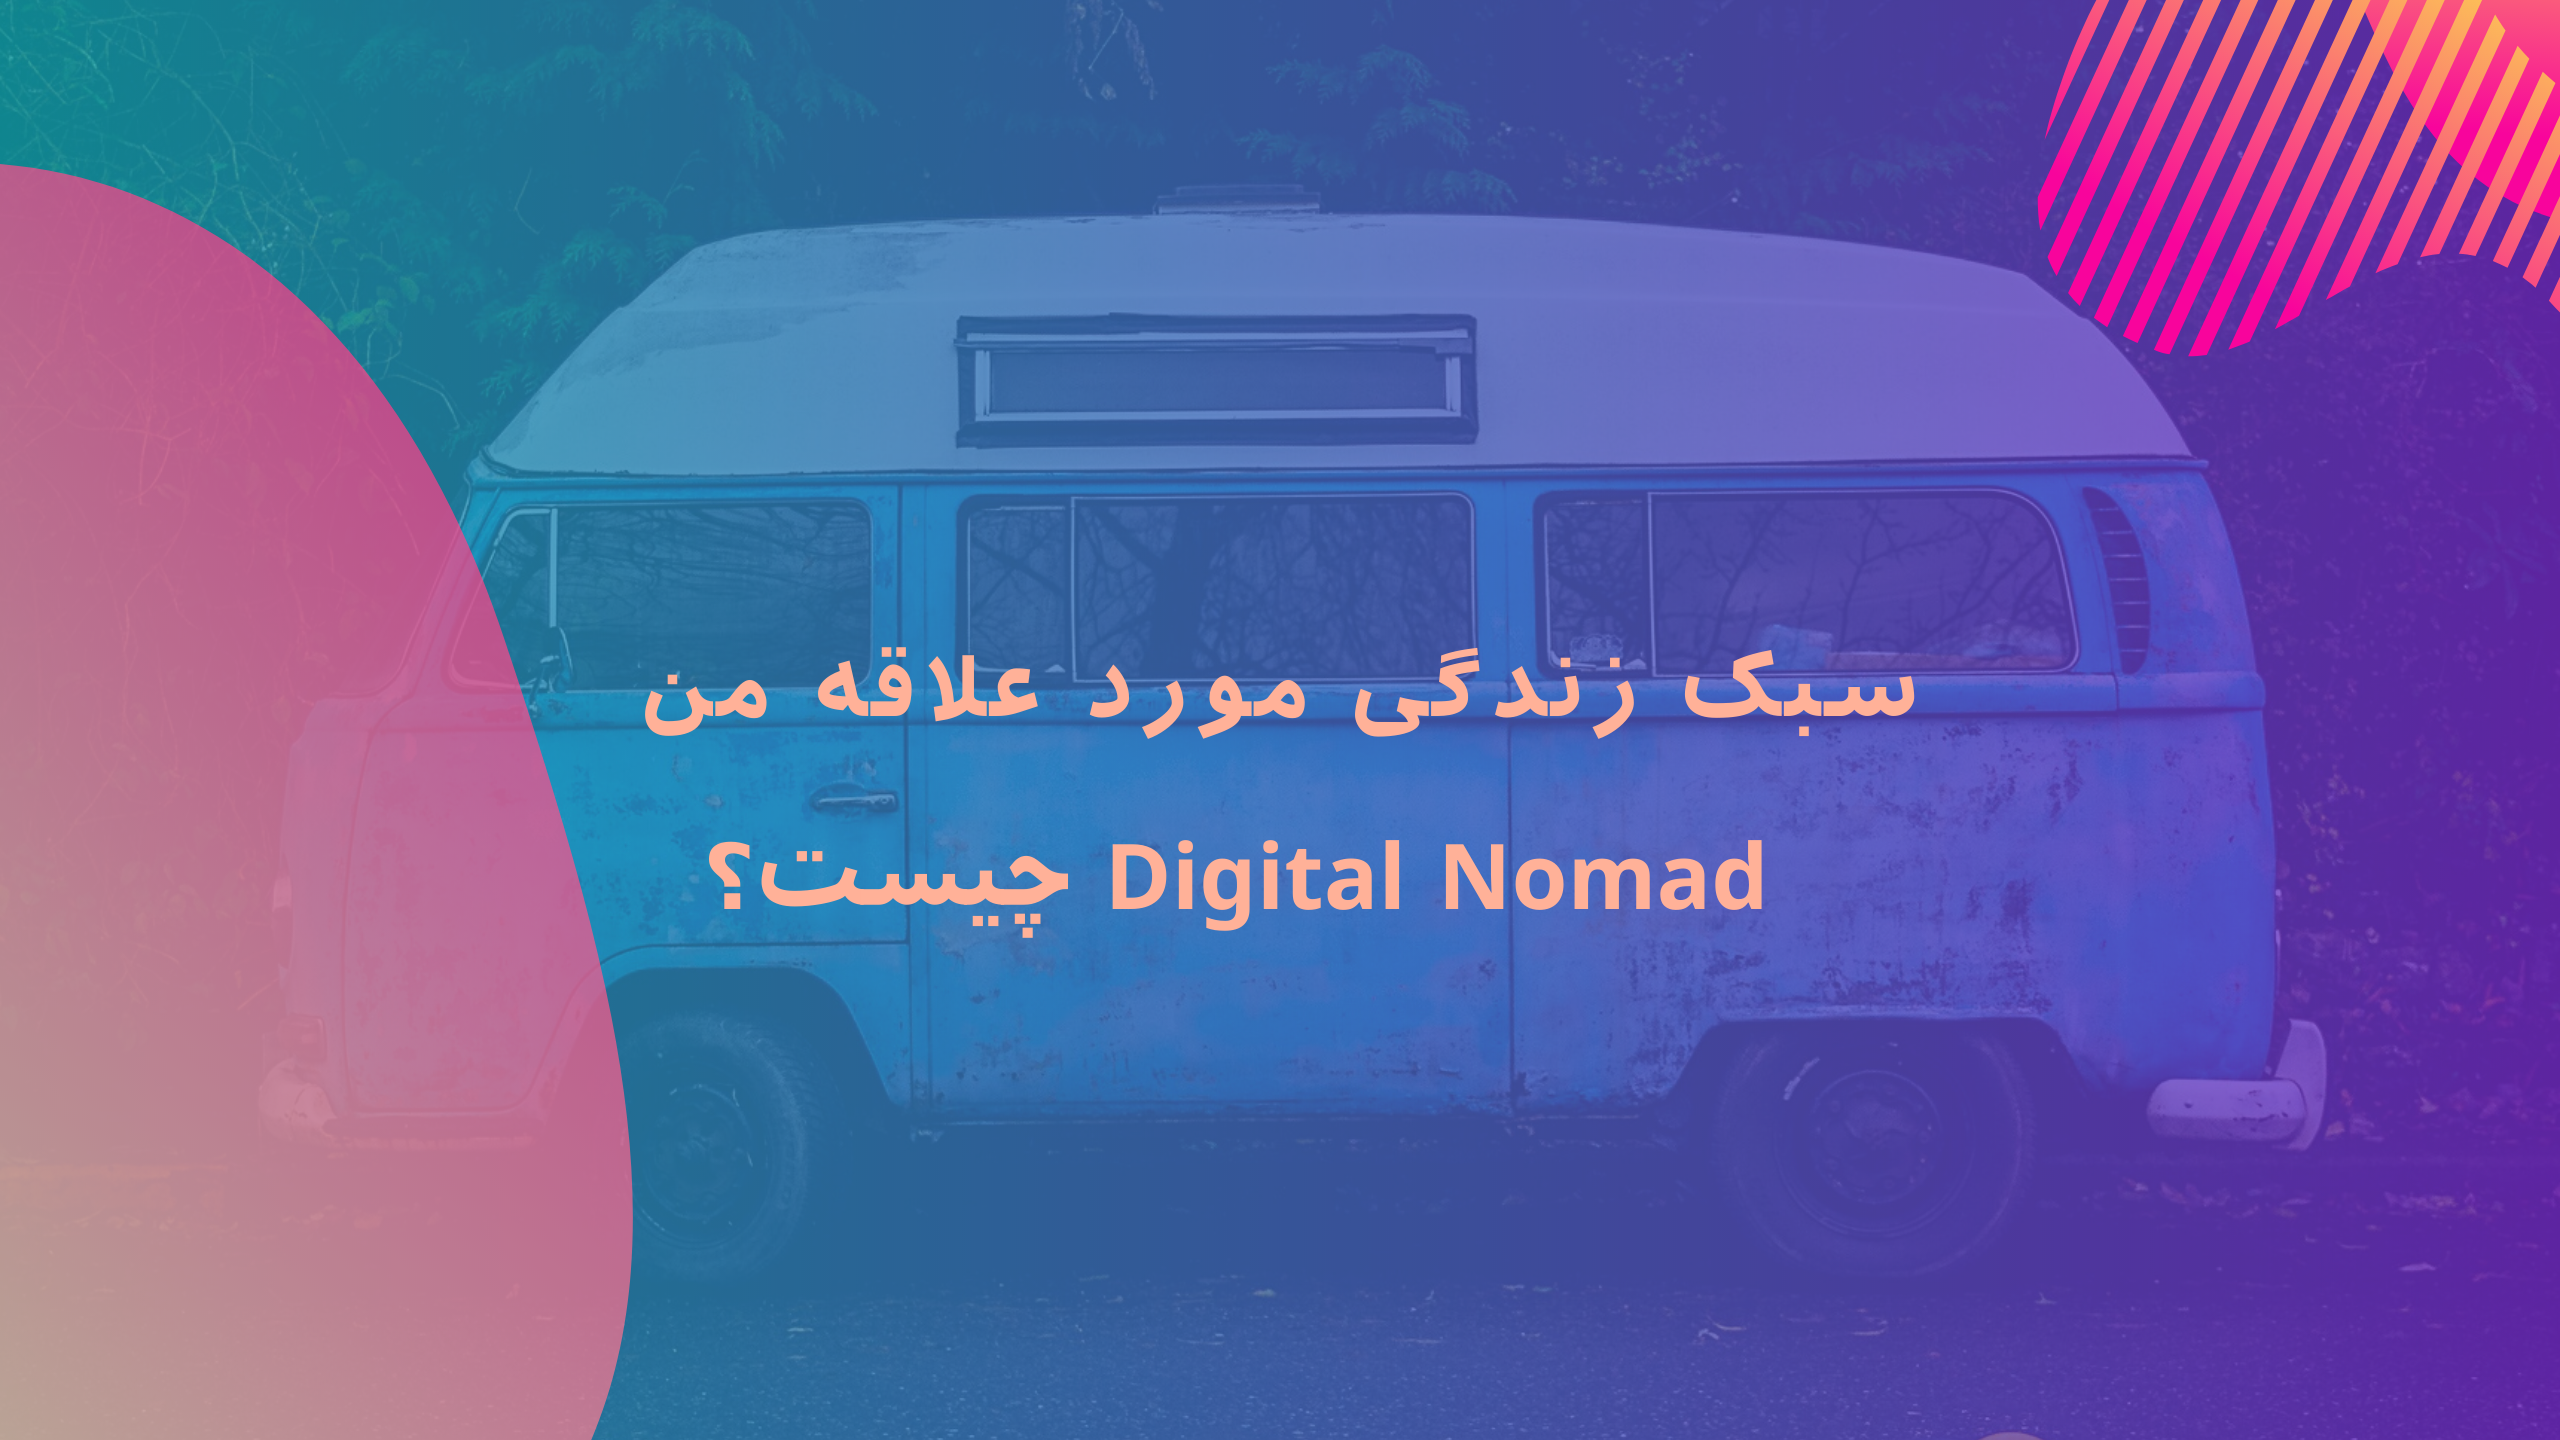 سبک زندگی فریلنسری Digital Nomad